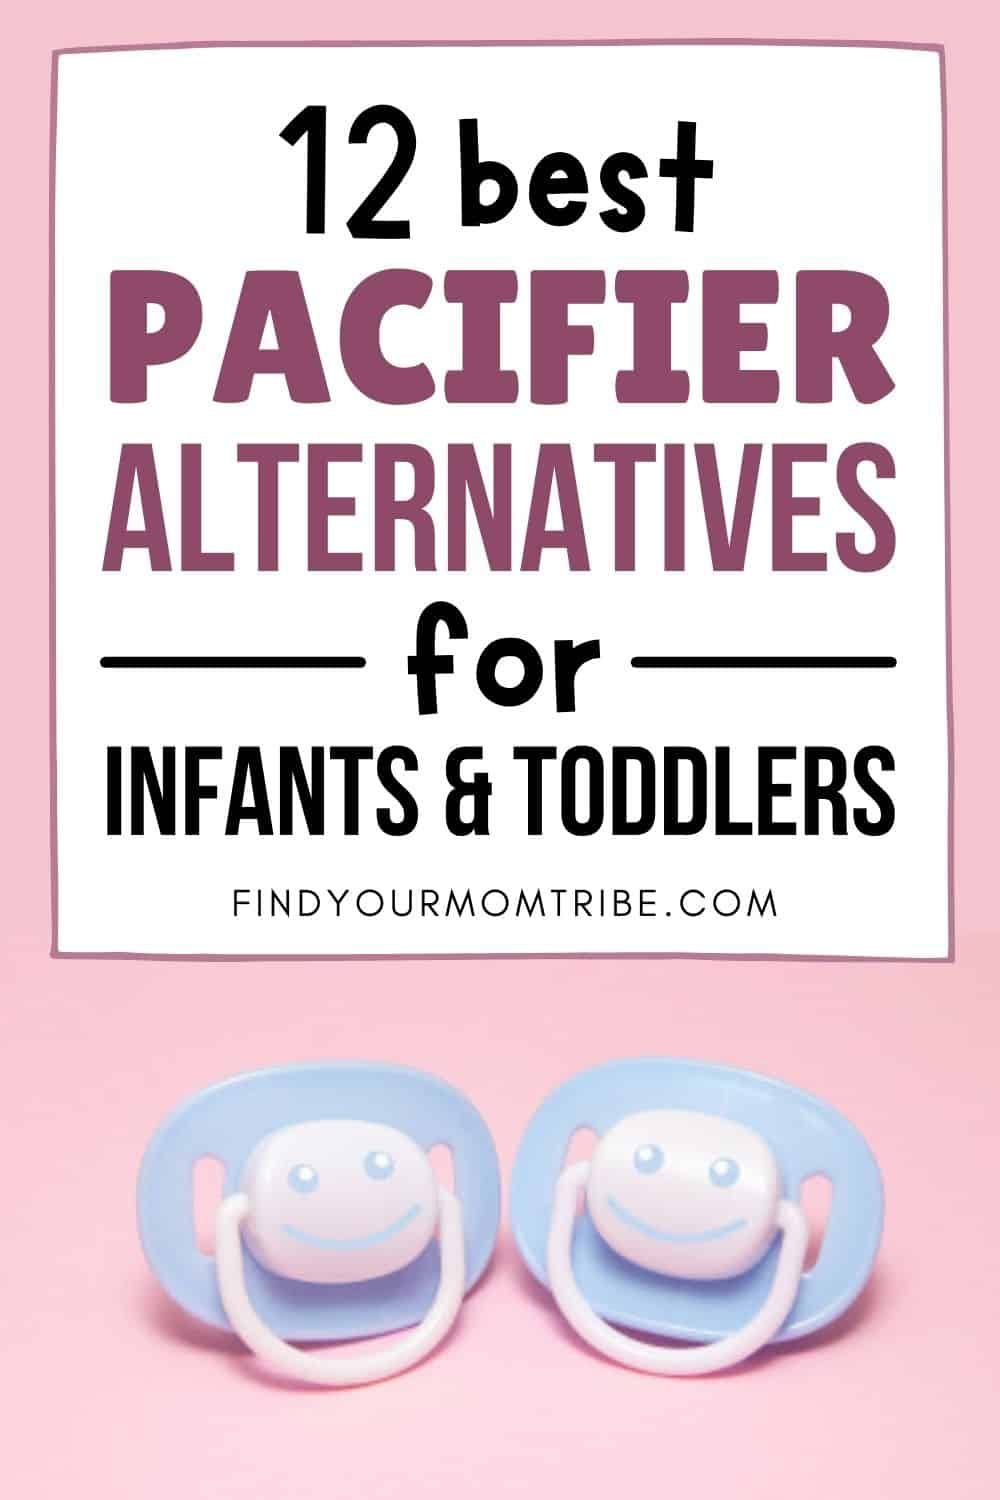 Top 12 Excellent Pacifier Alternatives For Infants and Toddlers Pinterest